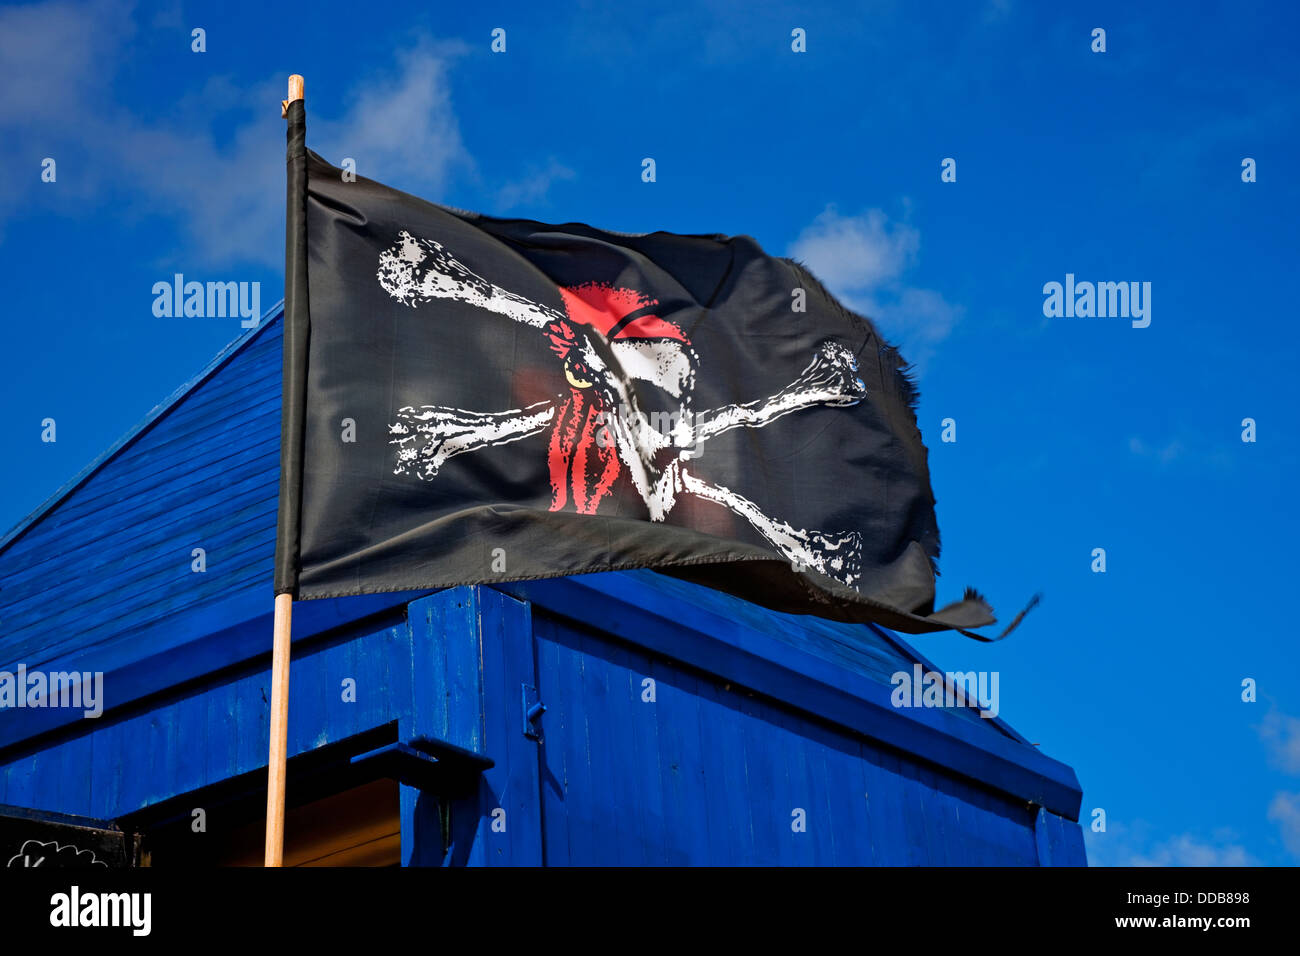 Skull and crossbones pirate flag - Stock Image